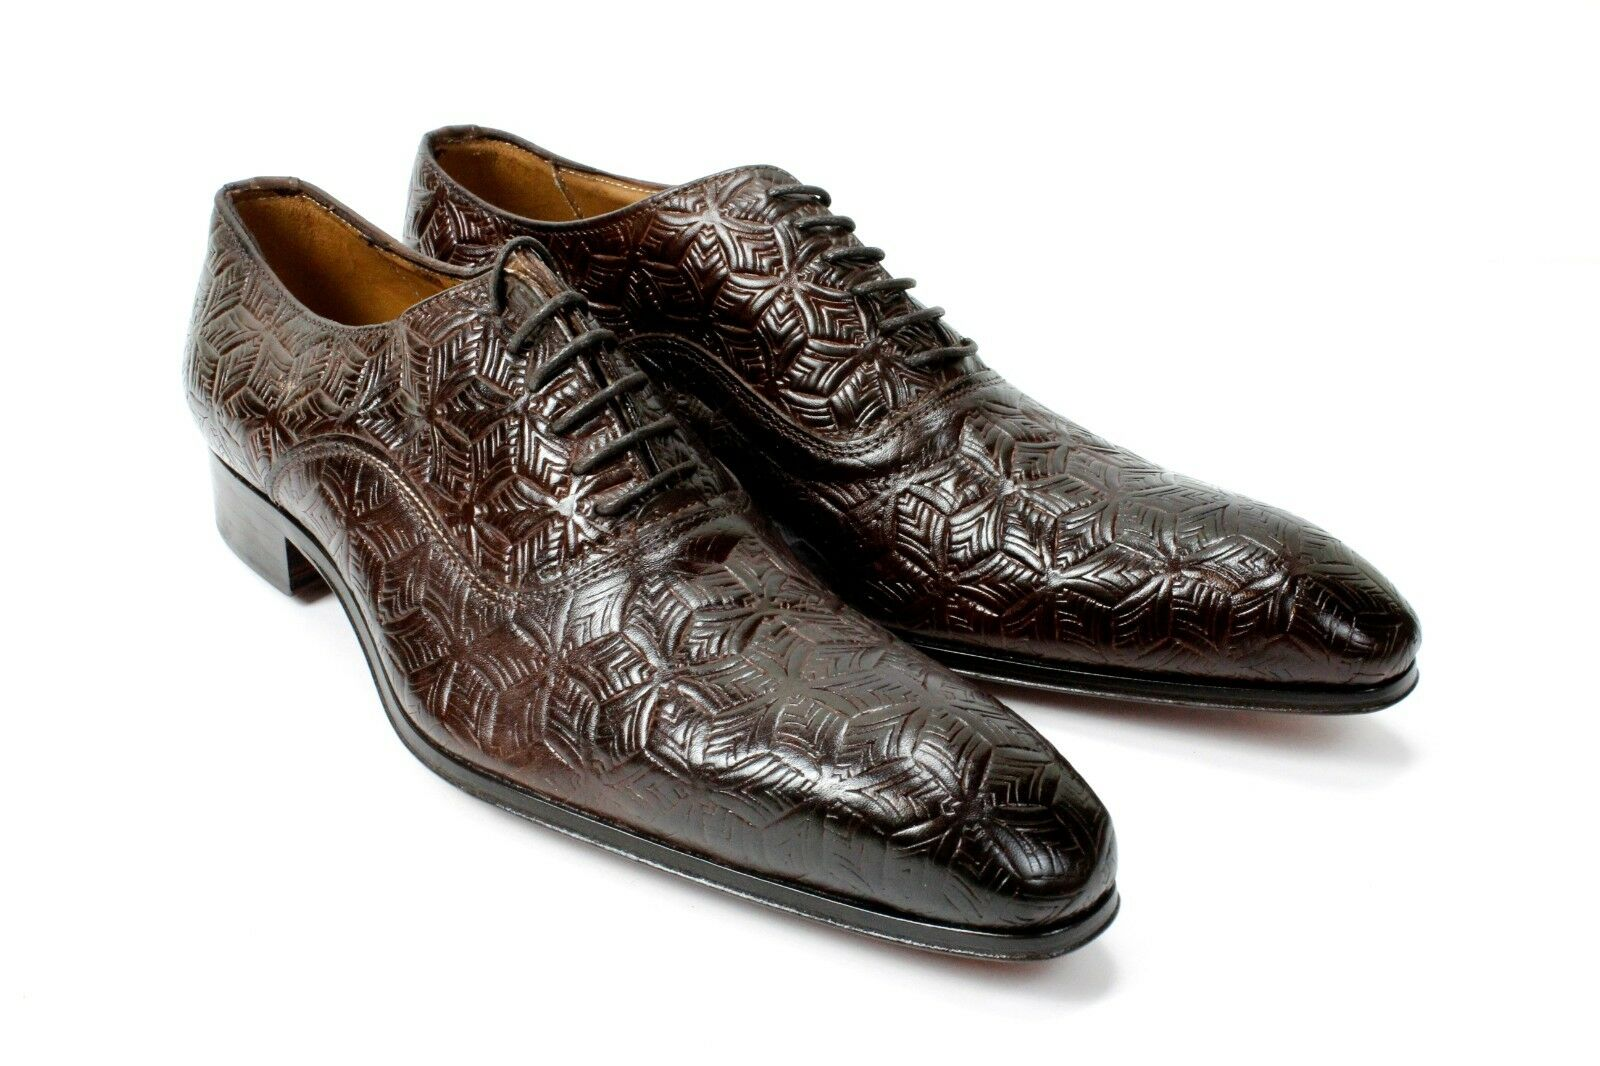 IVAN TROY Sambou Brown Handmade Italian Leather Dress shoes Oxford Office shoes